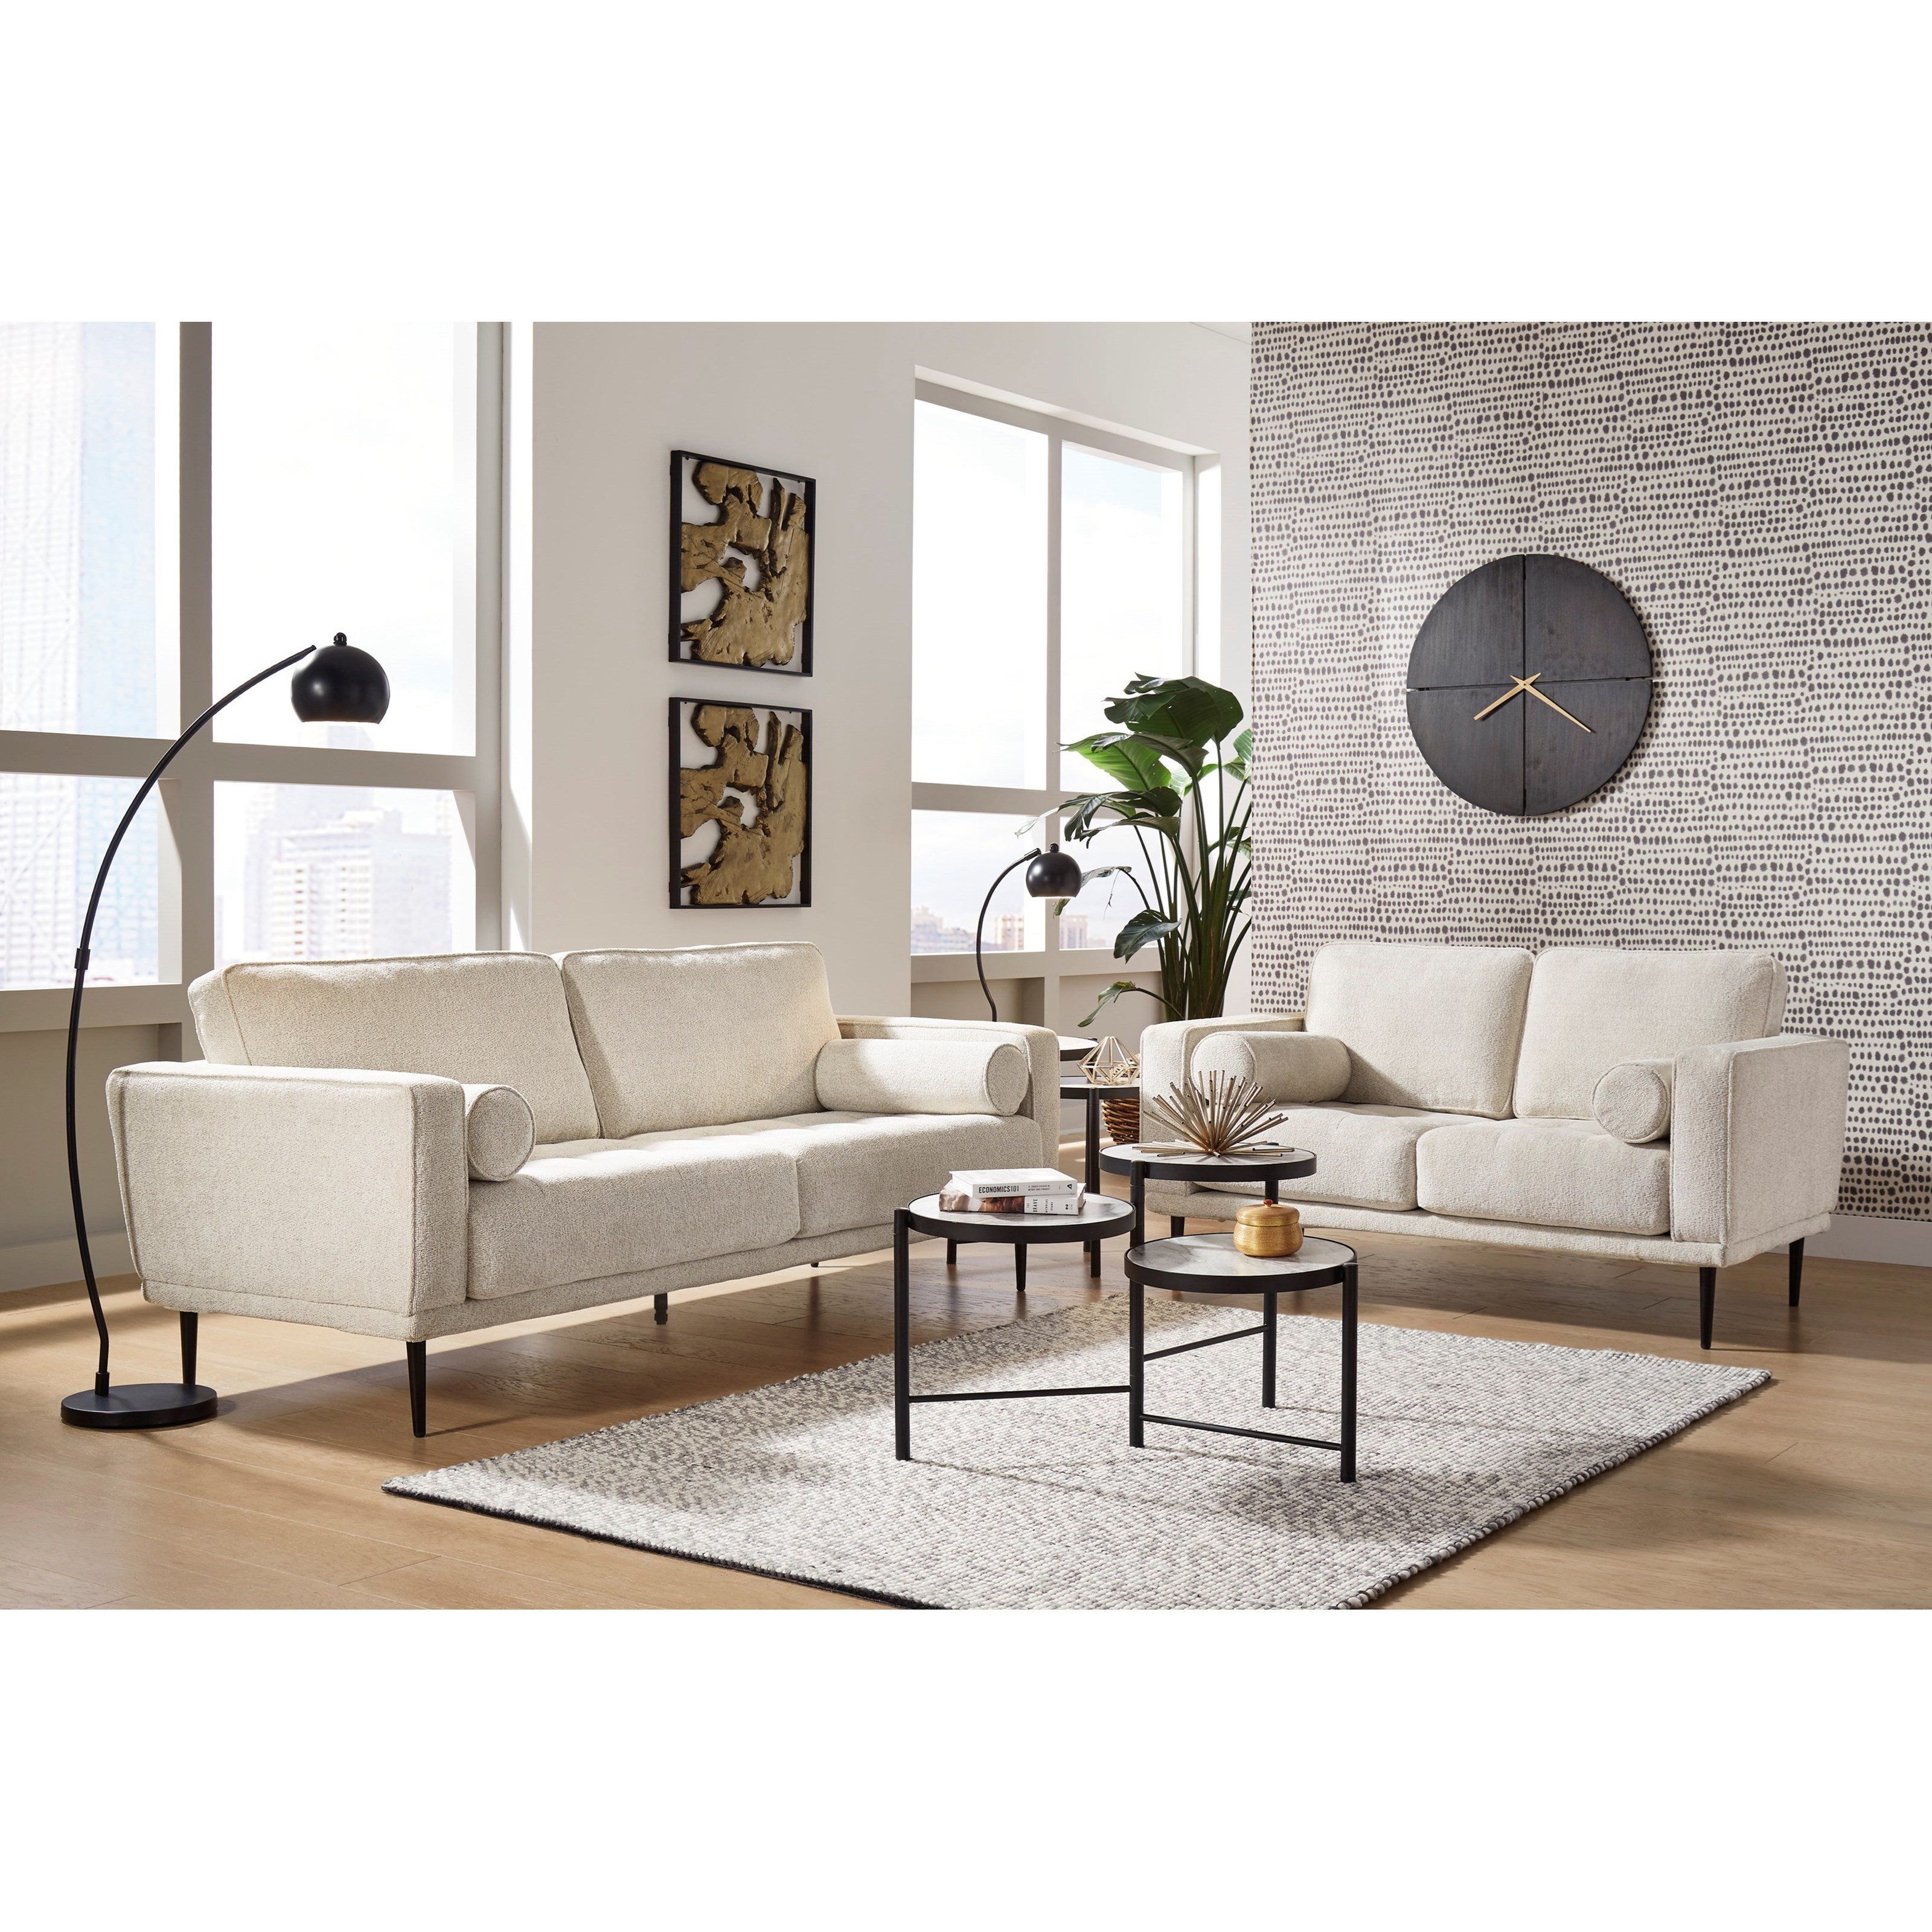 Caladeron Living Room Group by Signature Design by Ashley at Standard Furniture